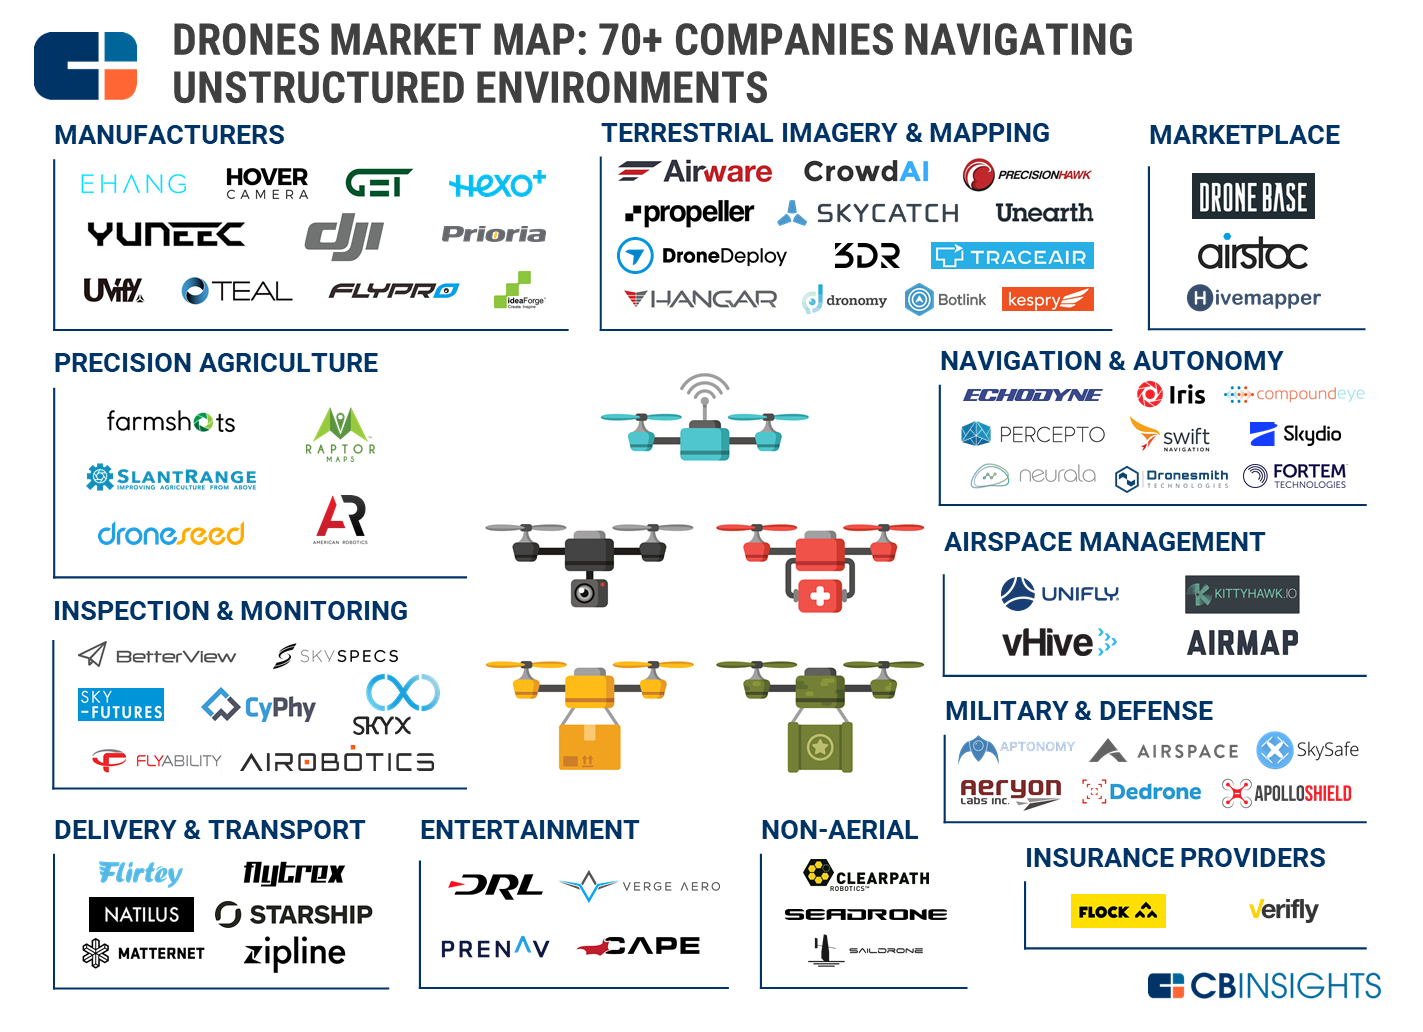 Neurala Named An Early-Stage Drone Company to Watch by CB Insights